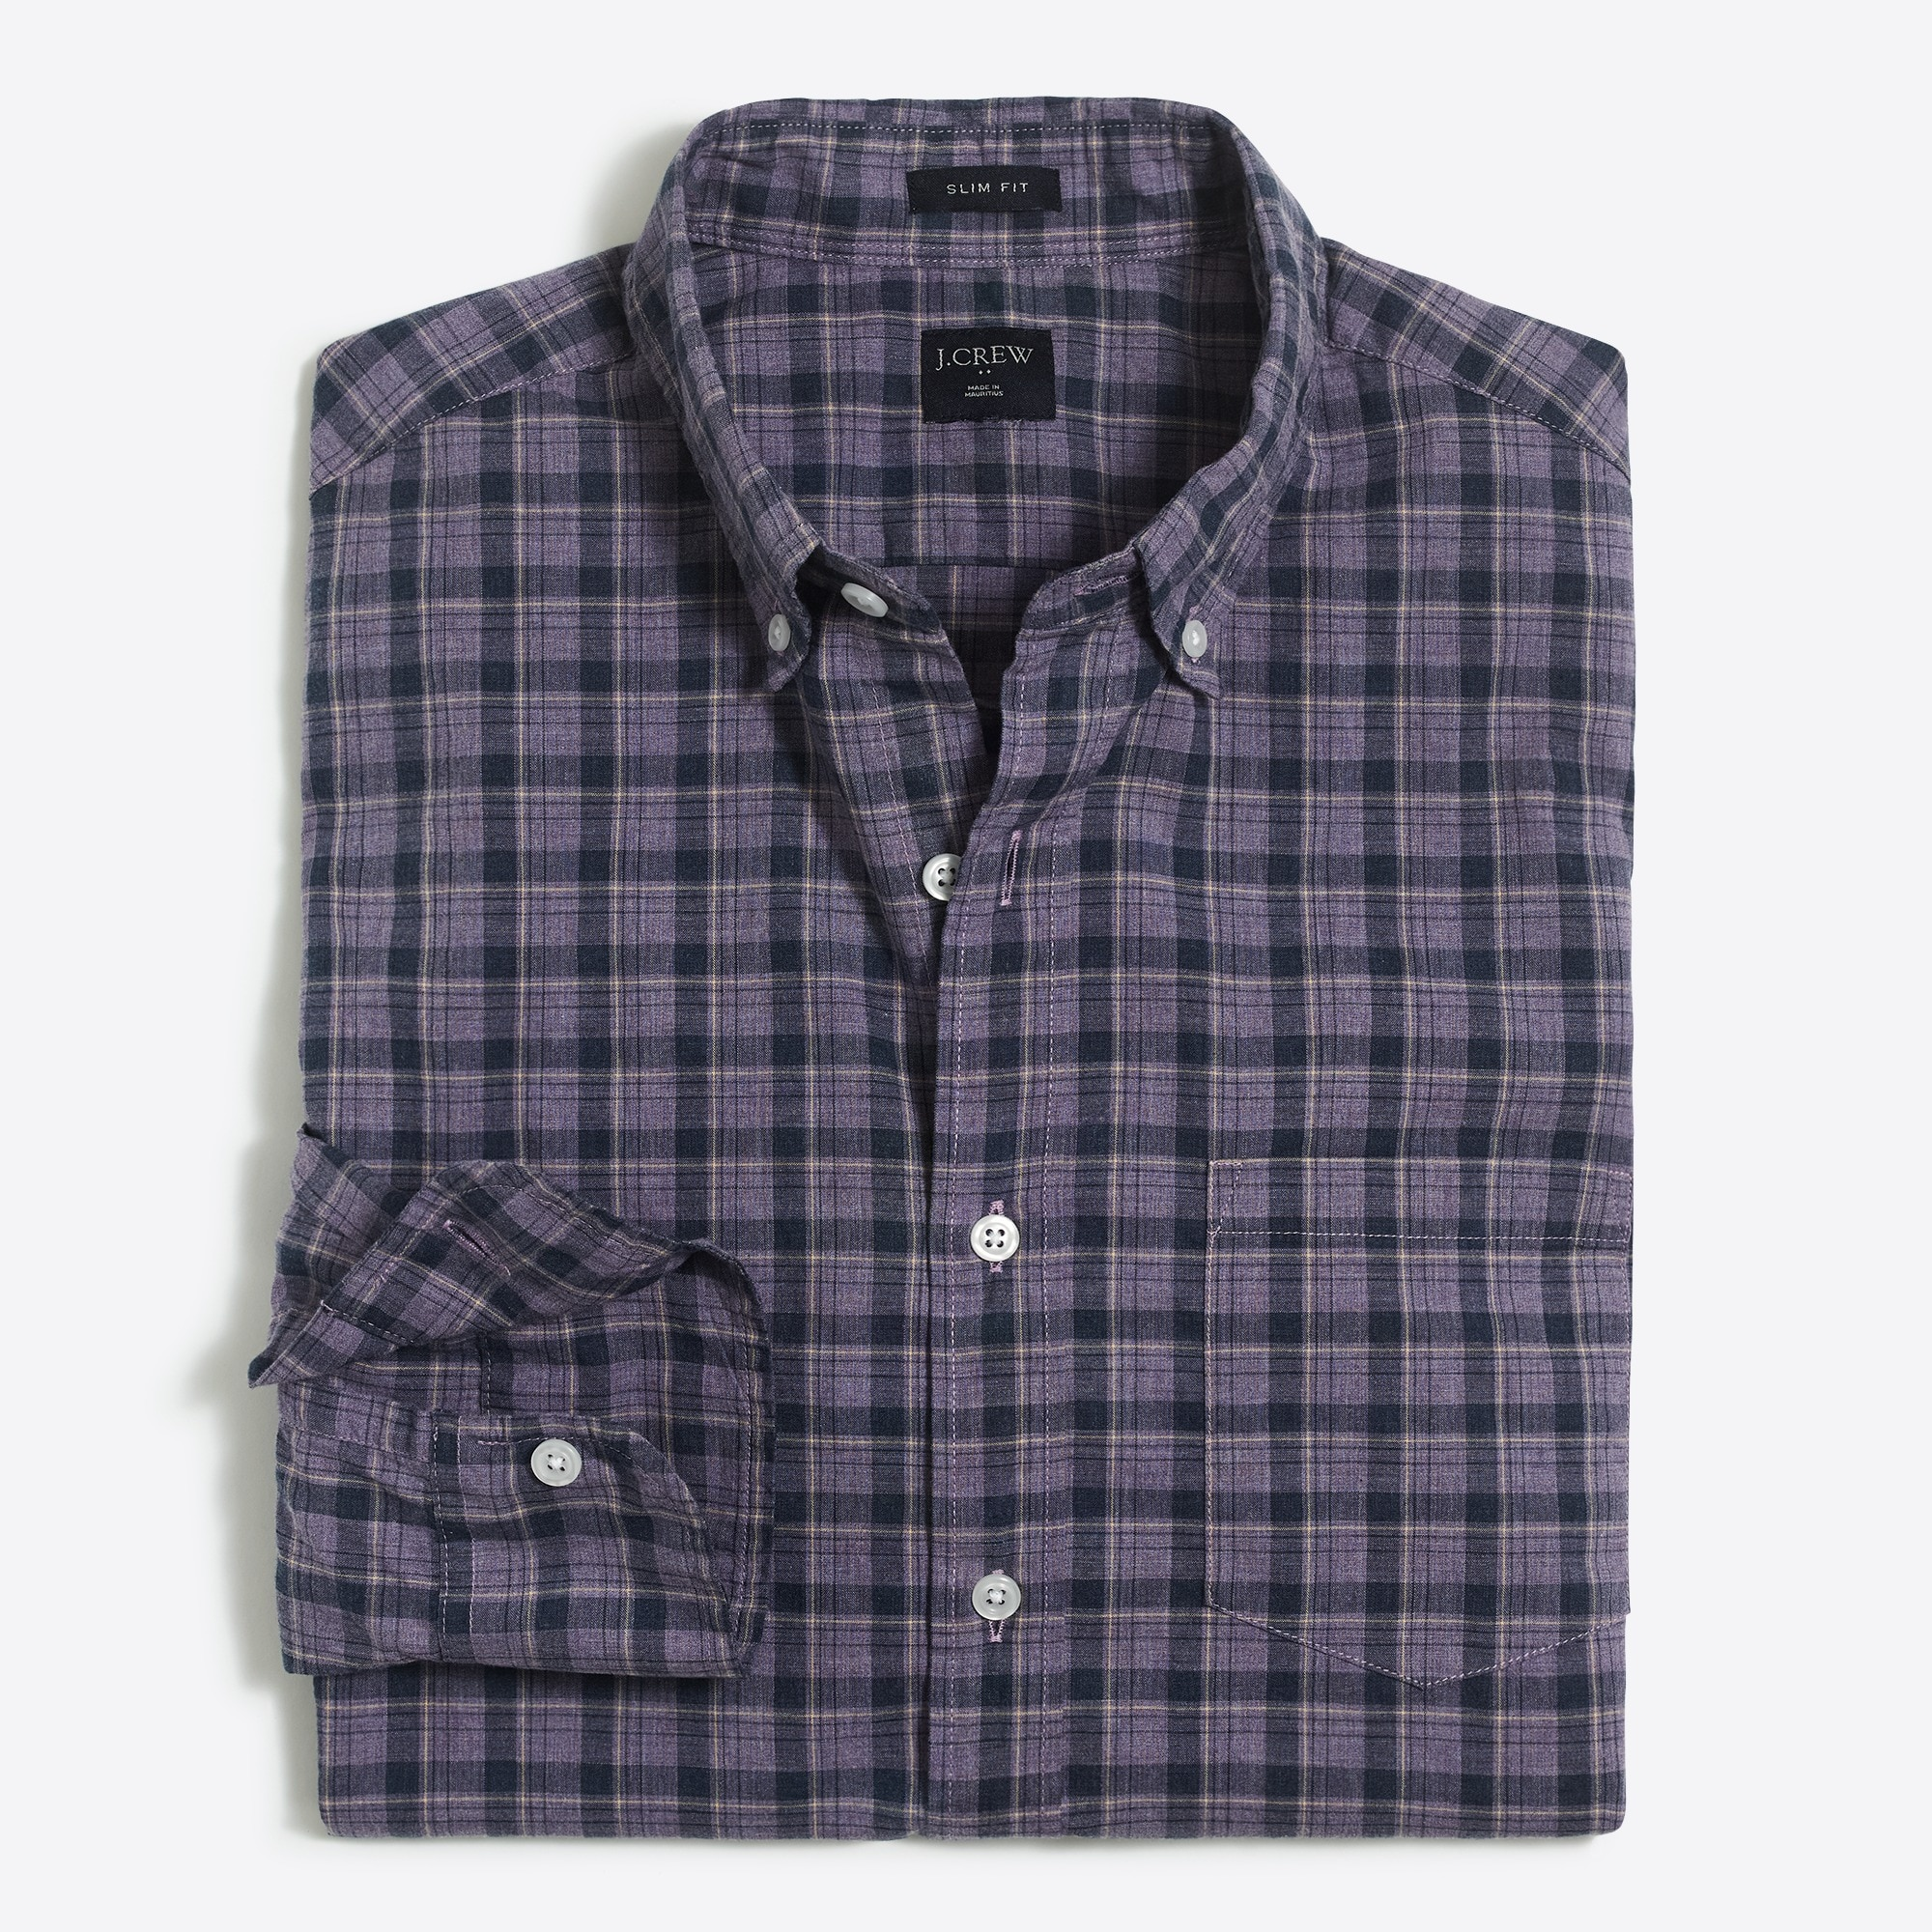 Slim heather washed plaid shirt